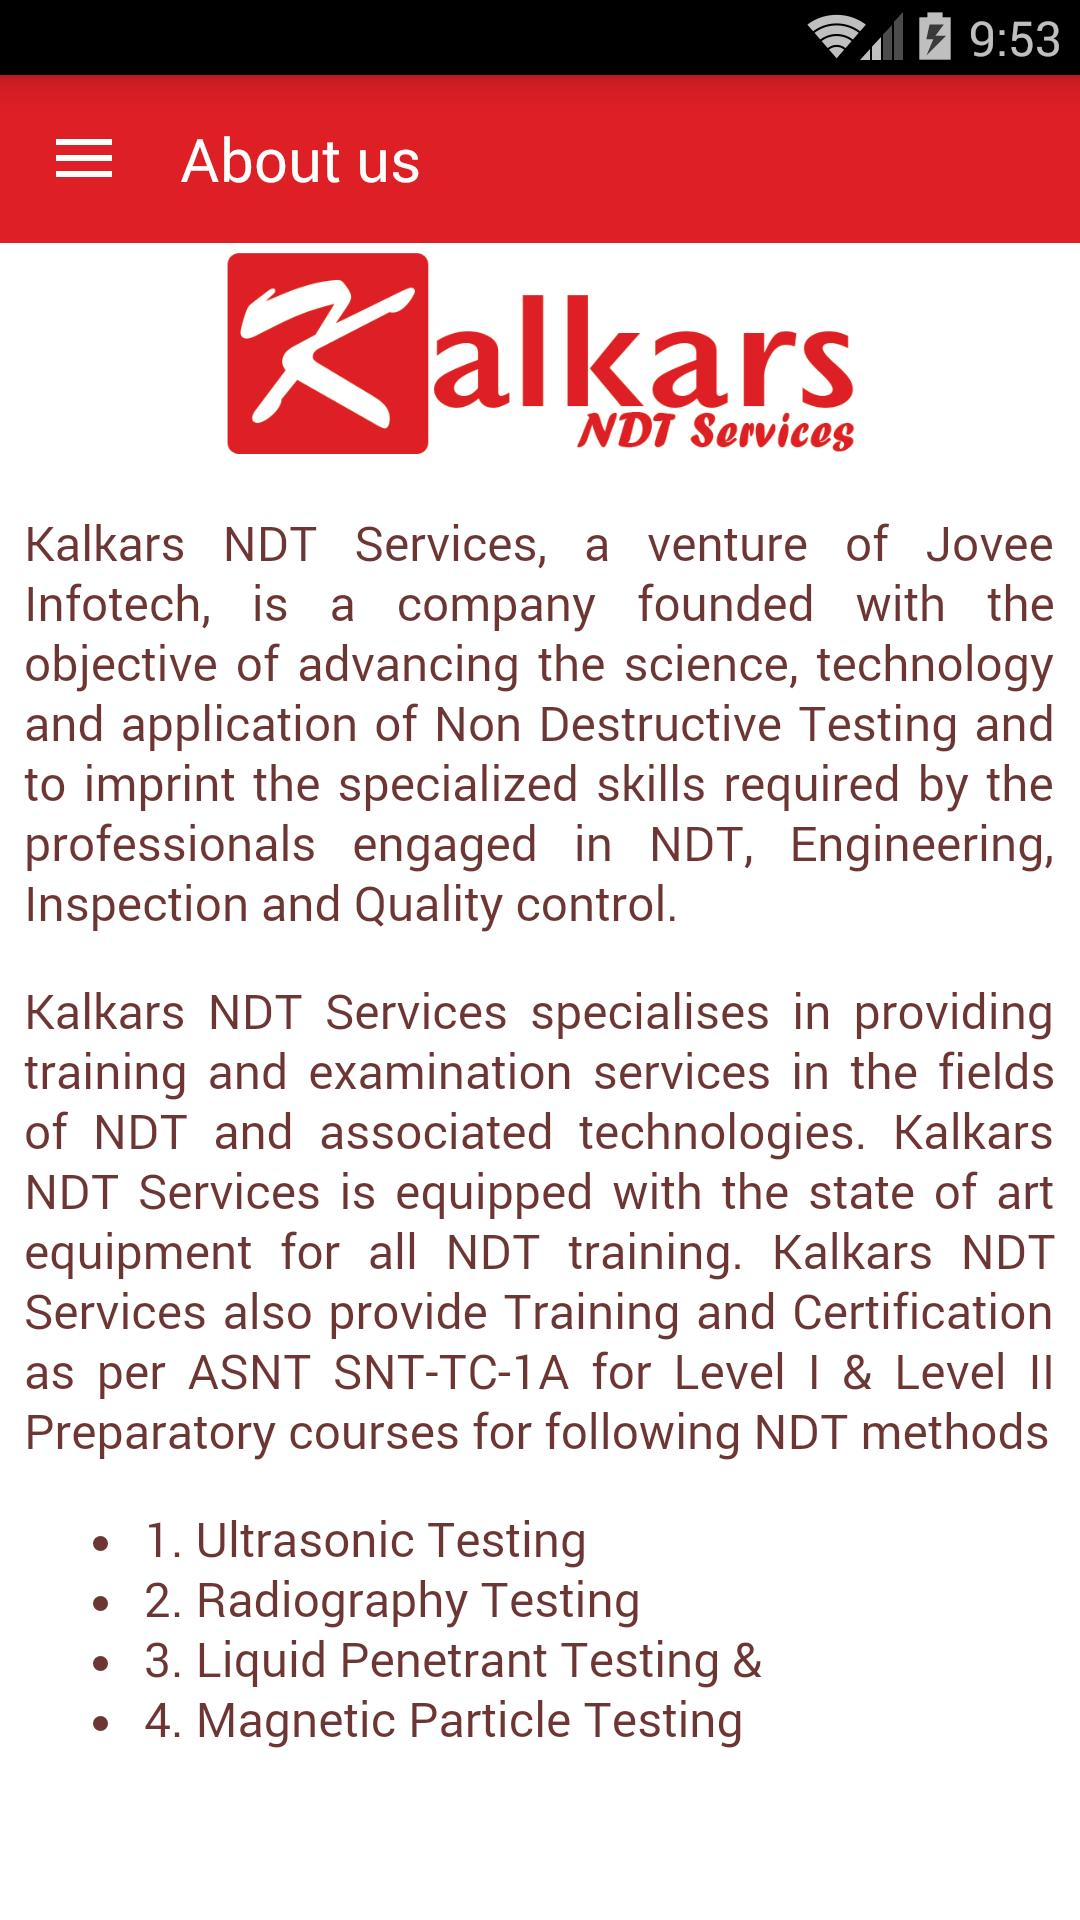 Kalkars NDT Services for Android - APK Download